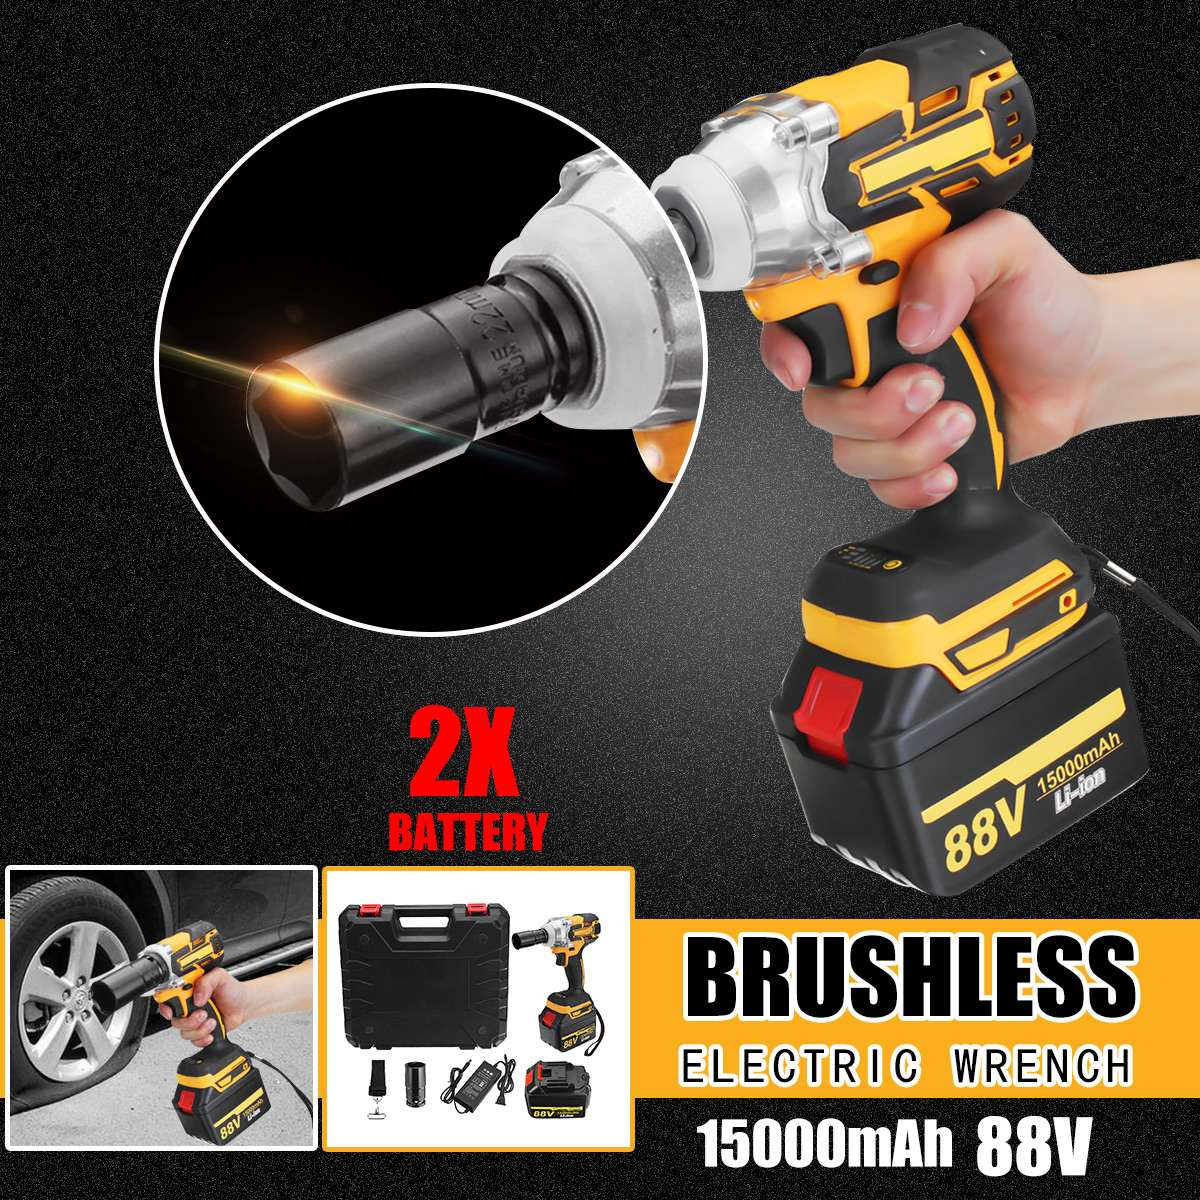 88V 15000mAh Rechargeable Battery Brushless Electric Impact Socket Wrench Car Dual Speed Cordless Socket Electric Impact Drill tenwa20v brushless electric impact wrench cordless rechargeable lithium battery socket impact digital electric wrench